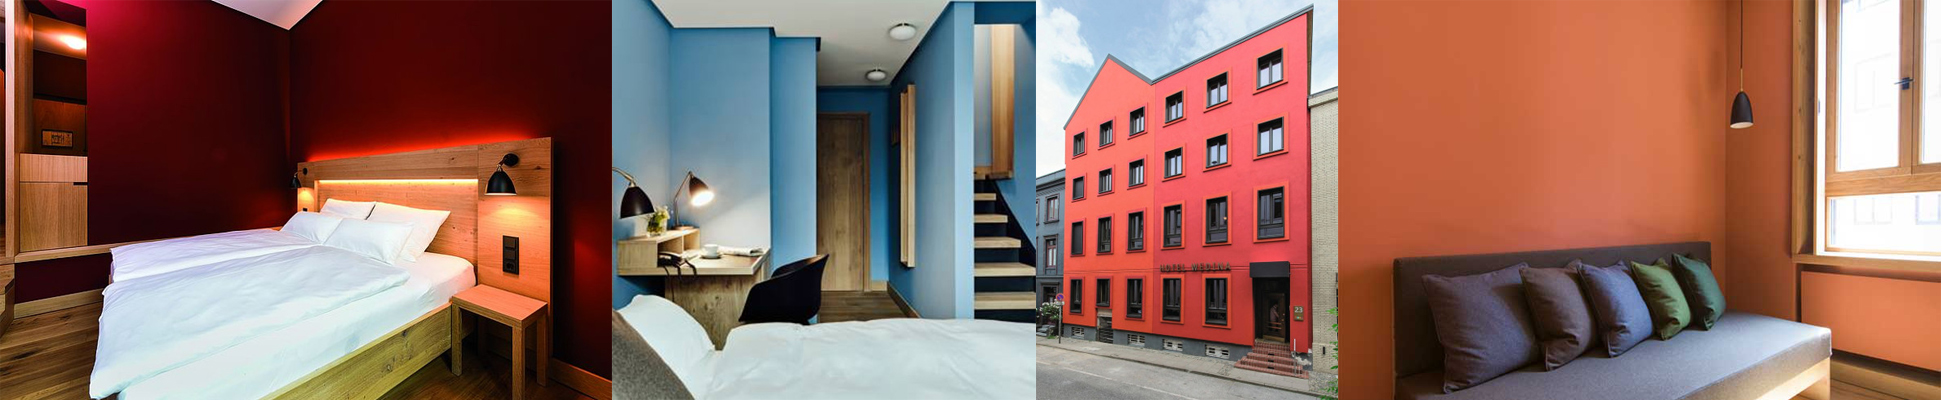 collage of building interiors and exteriors with KEIM paint